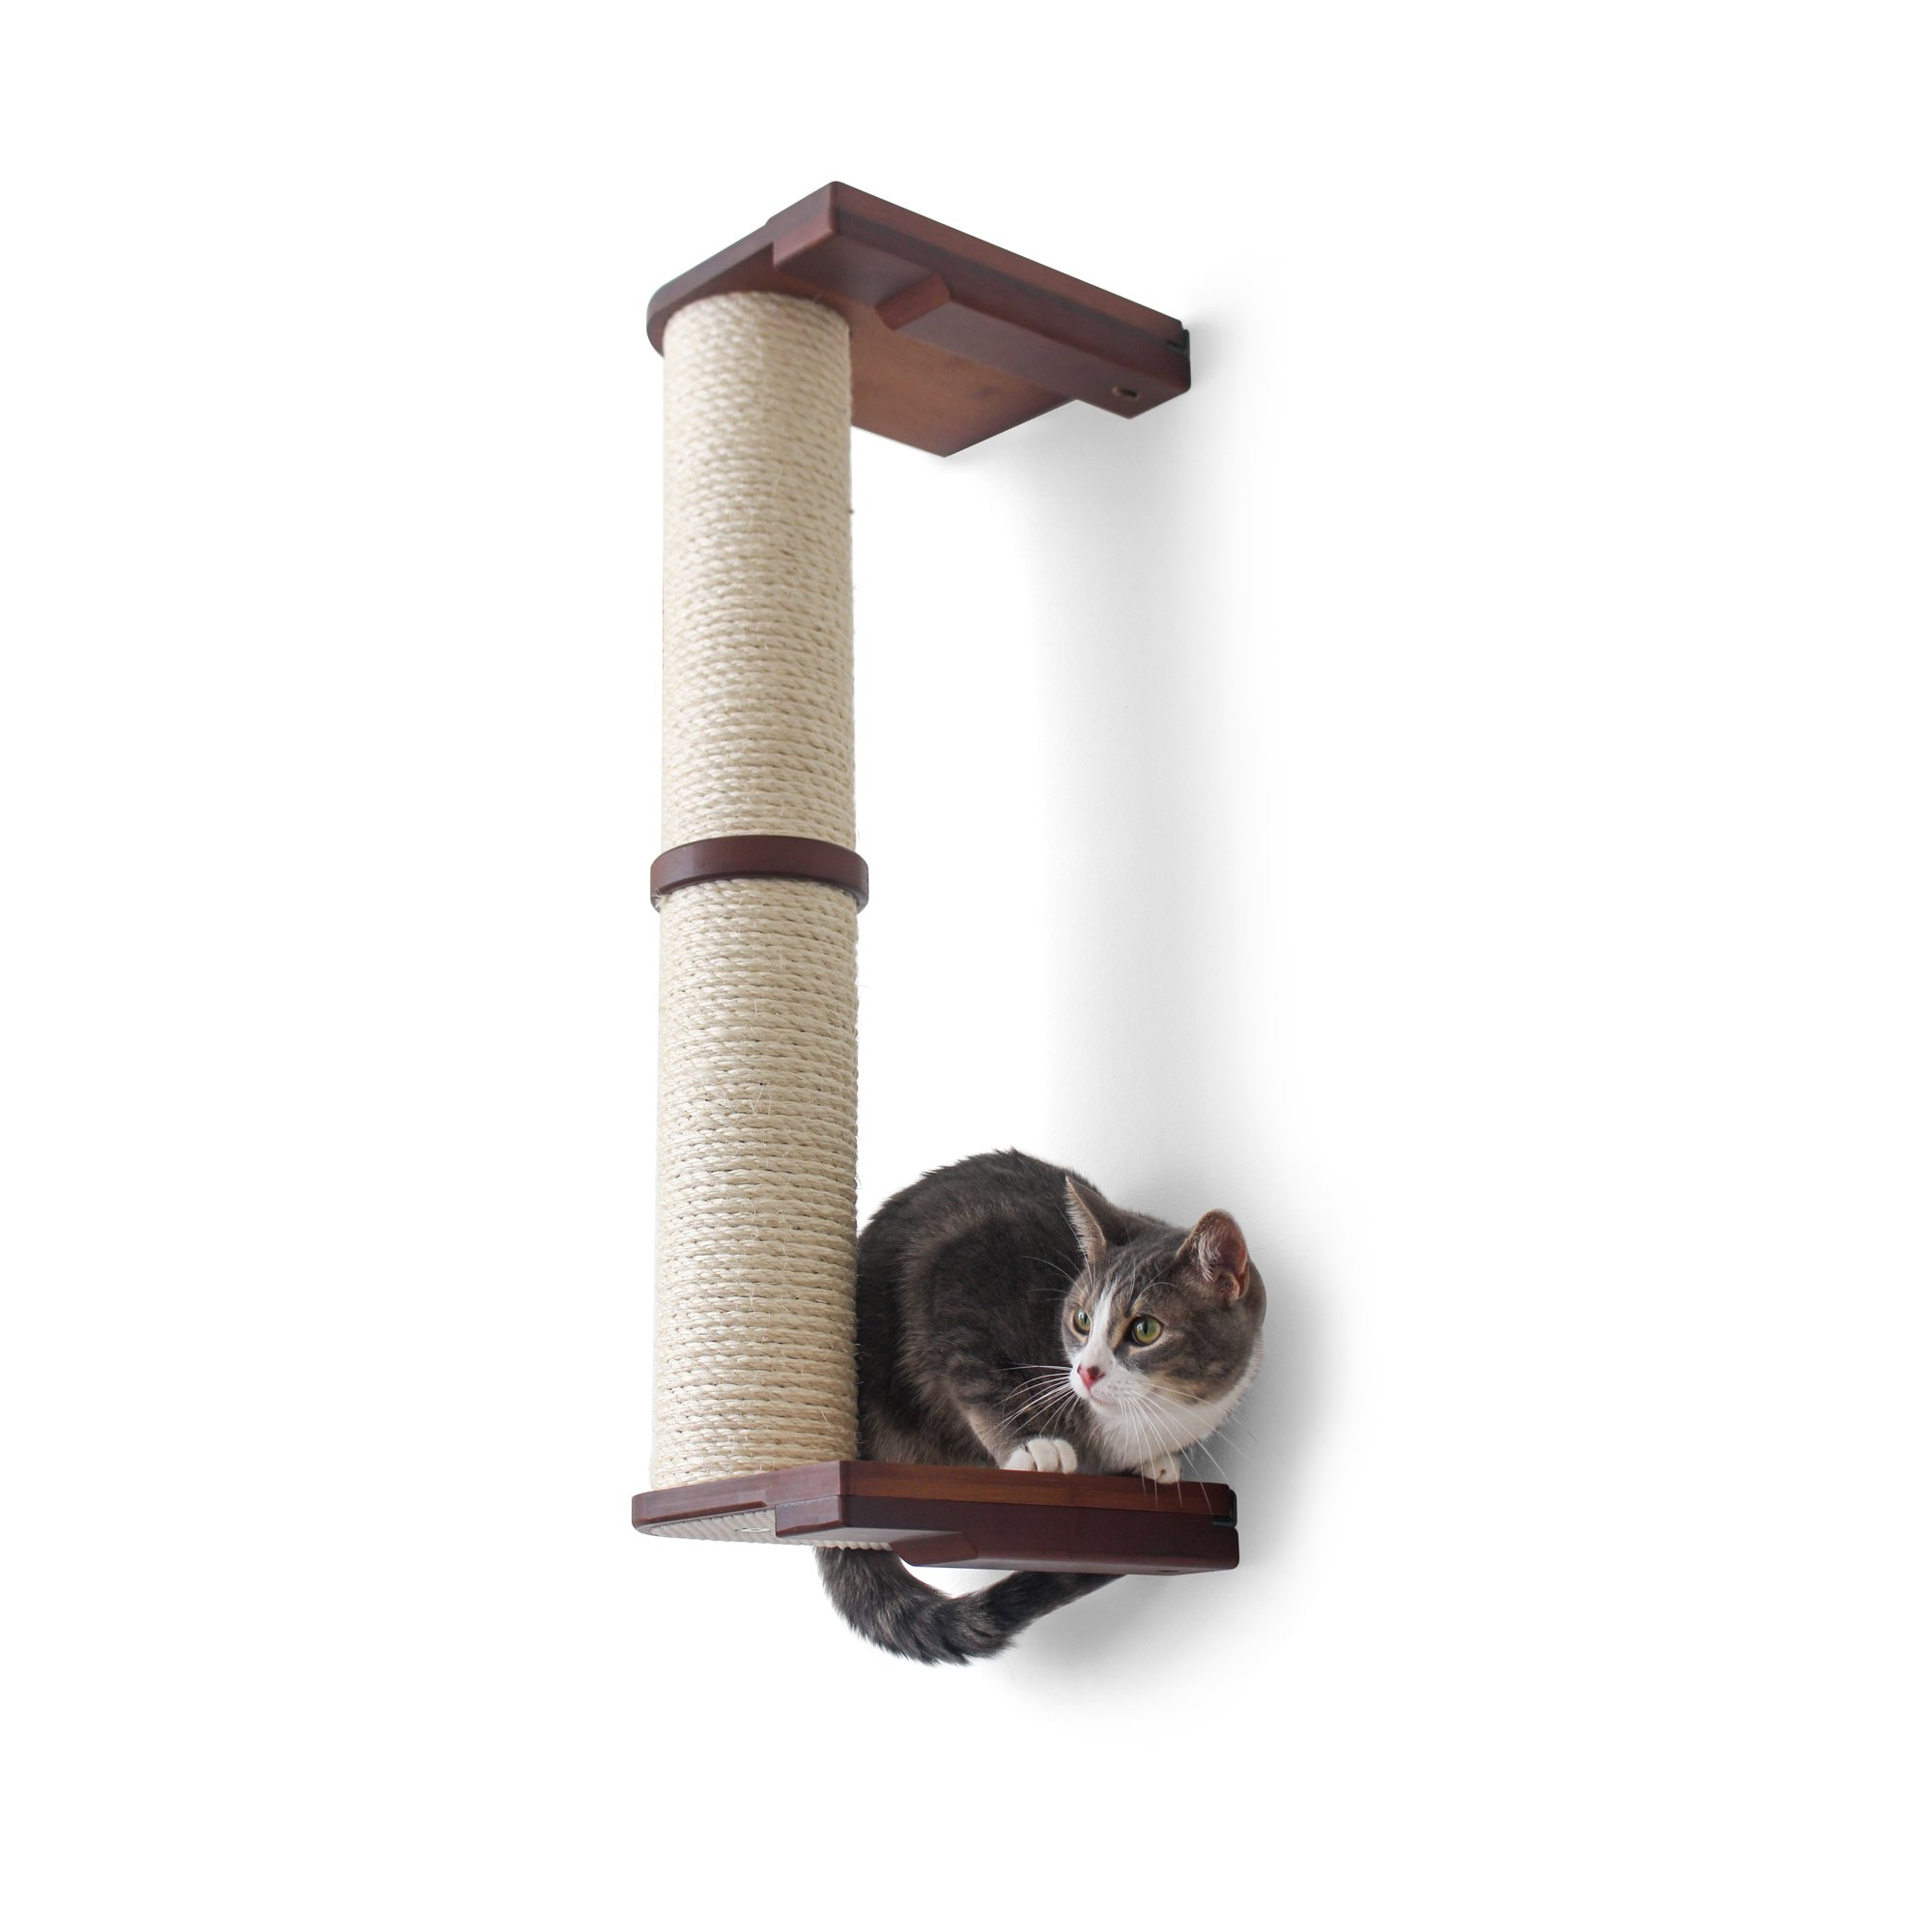 """Catastrophicreations The Cat Mod 28"""" Wall Mounted Sisal Pole For Cats In Onyx, 8 In W X 33 In H, 16 Lb"""